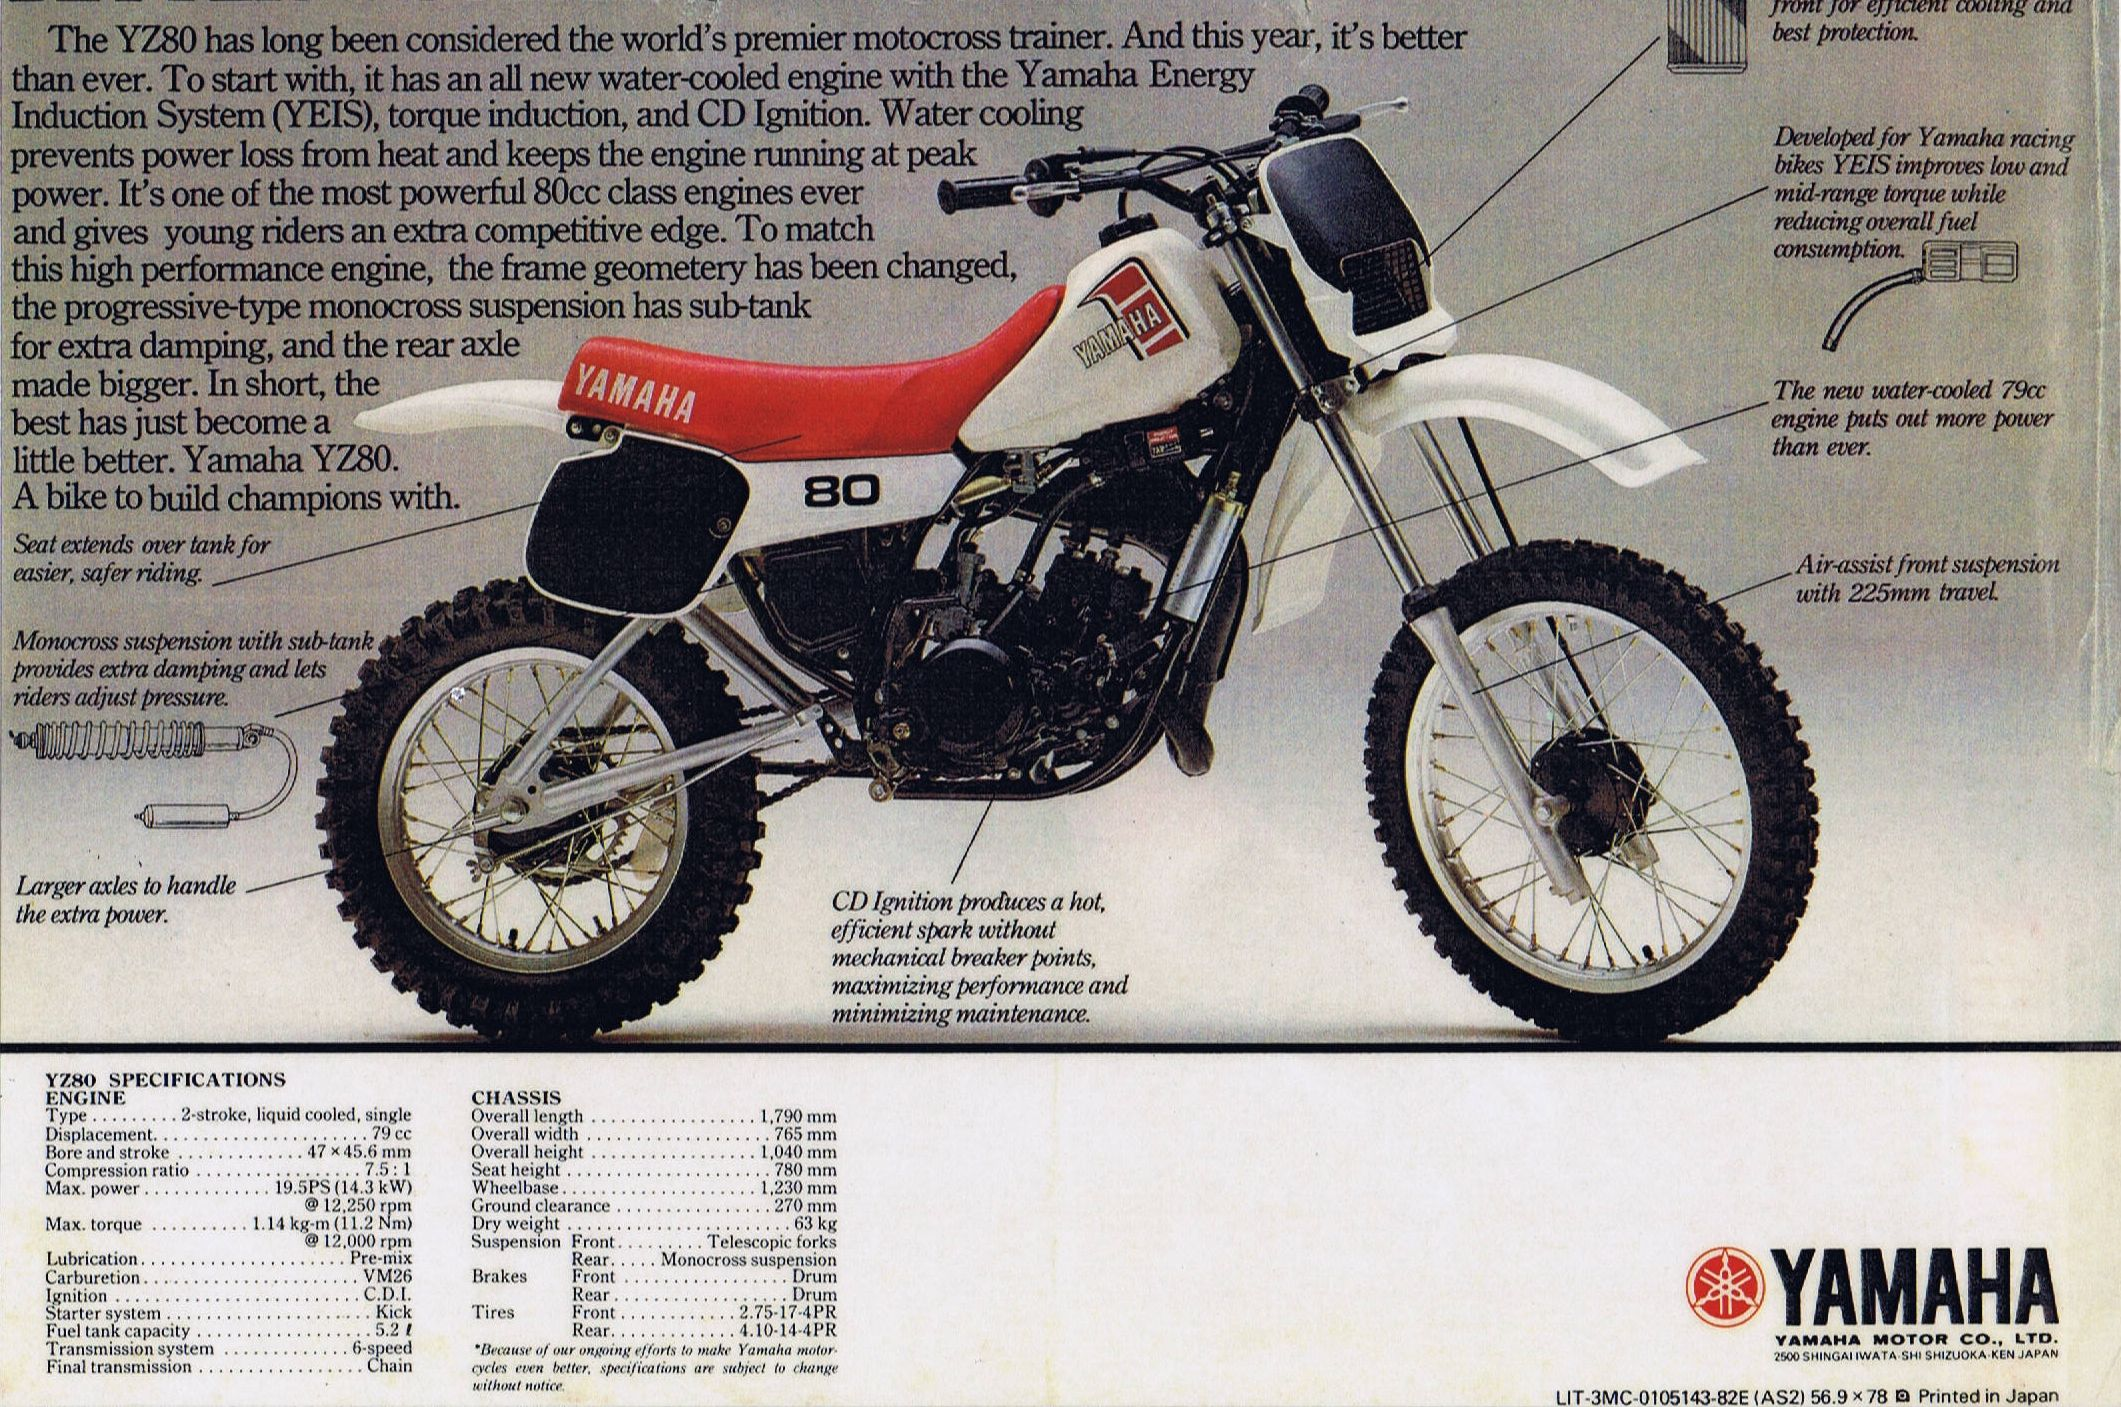 download now yamaha yz400f yz400 1979 79 service repair workshop manual